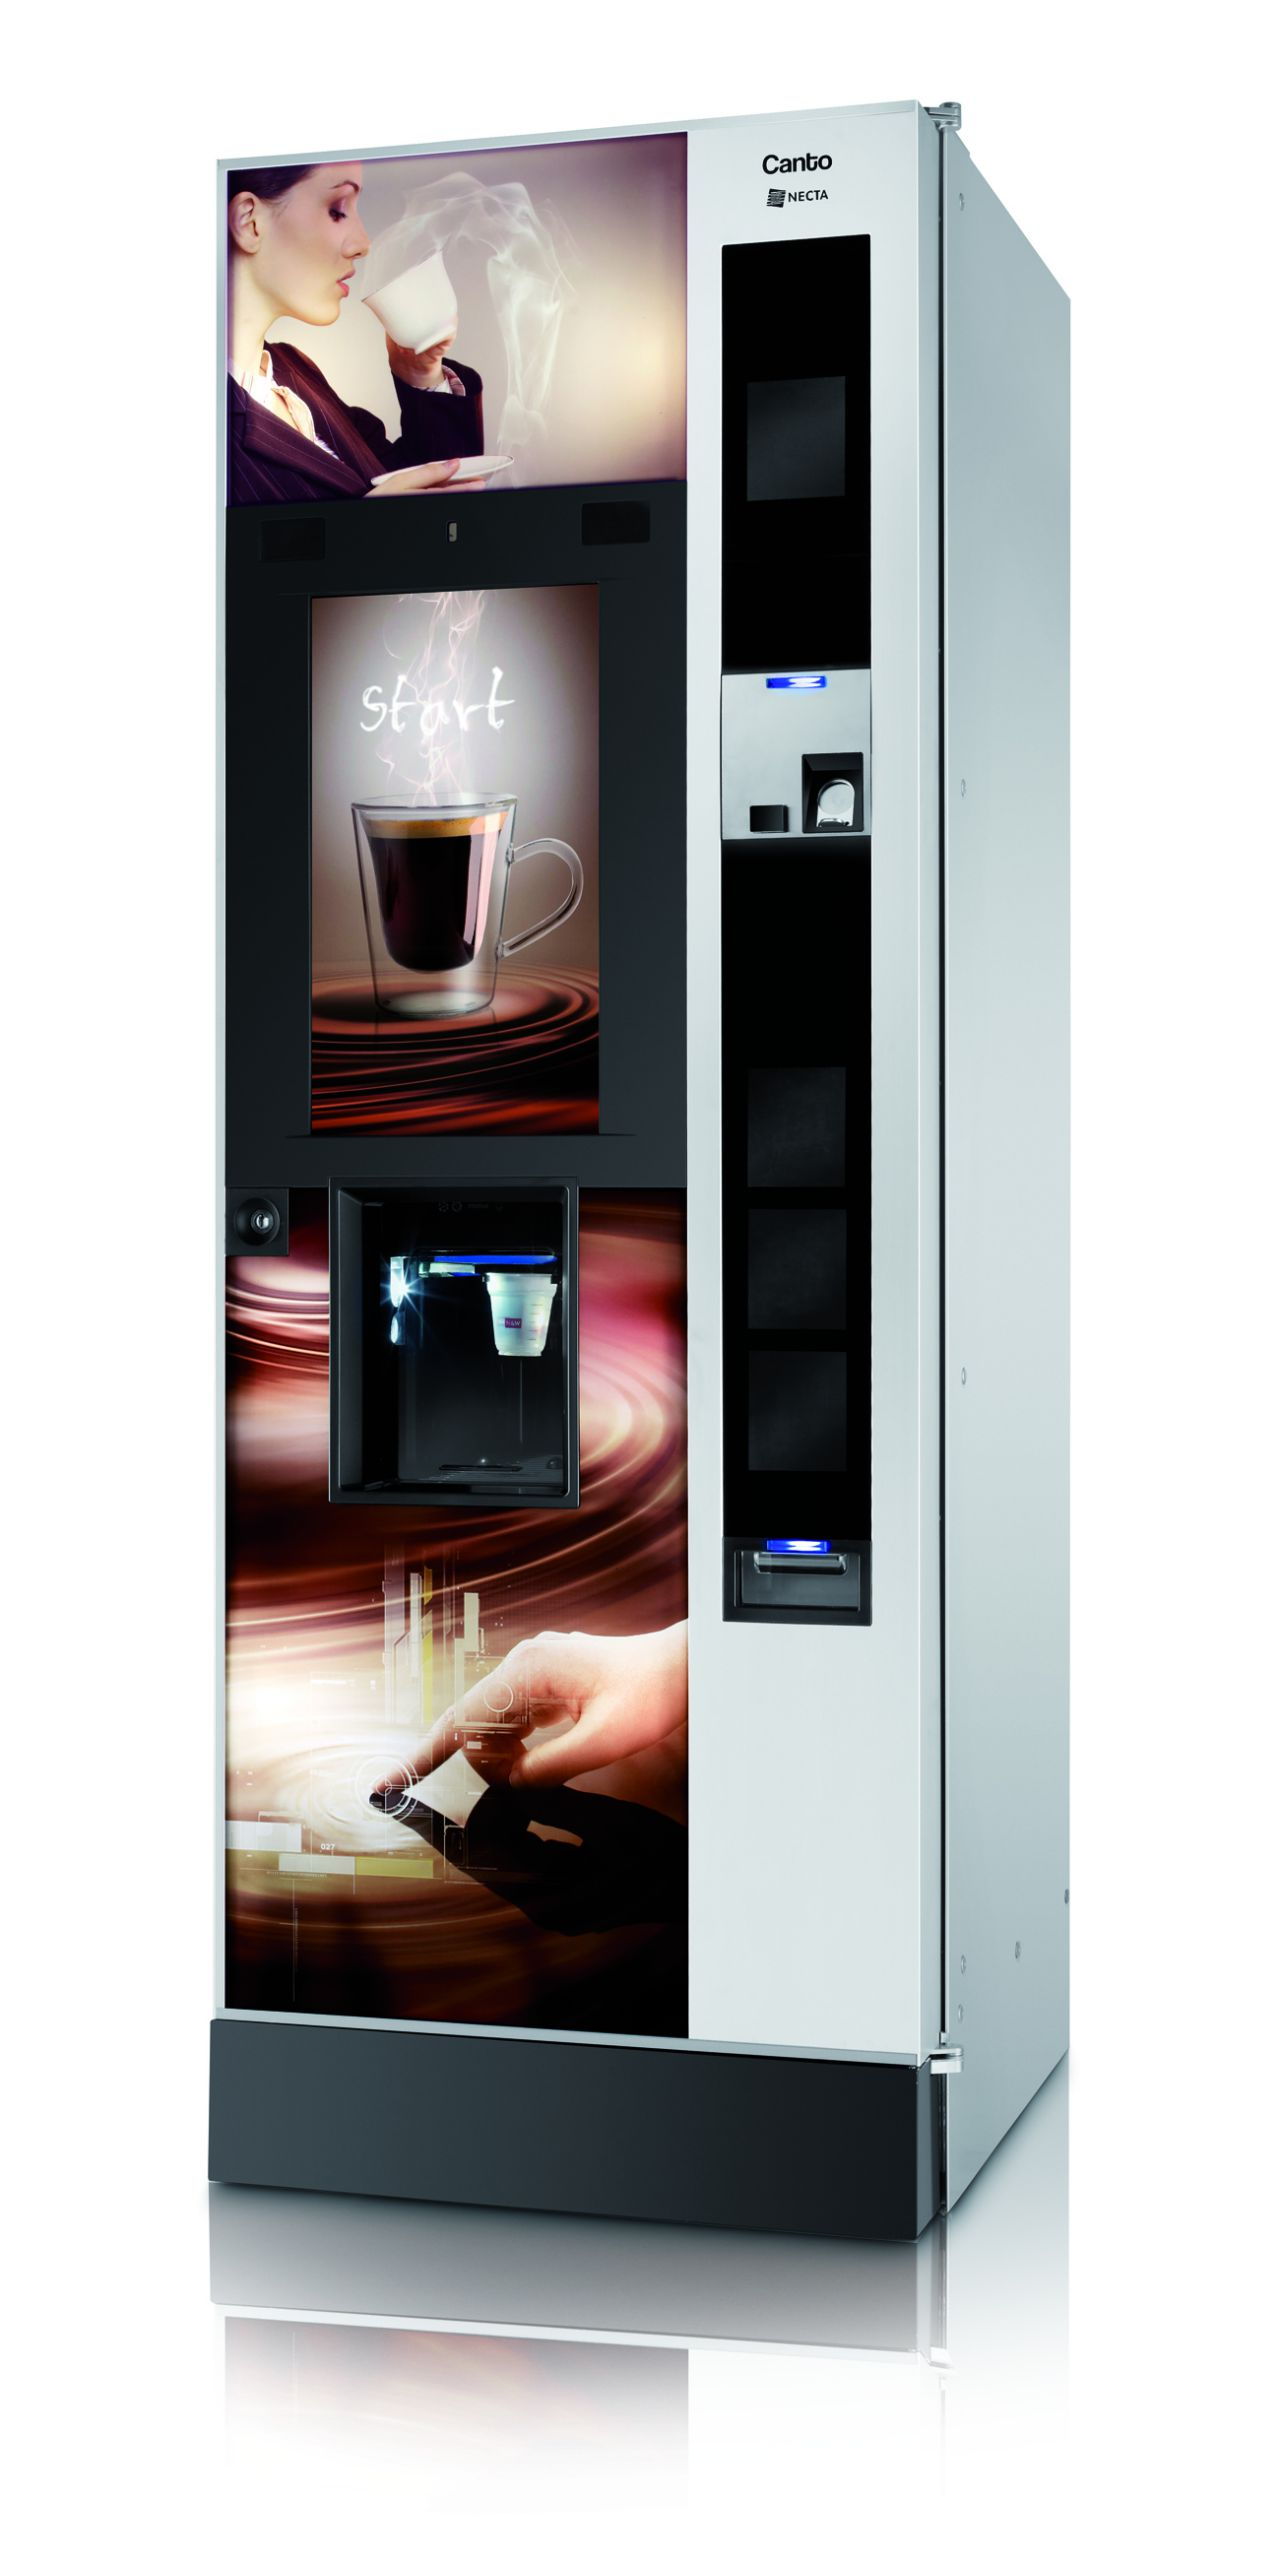 Necta Canto Touch | Nuovo Caffe Kaffeeautomaten